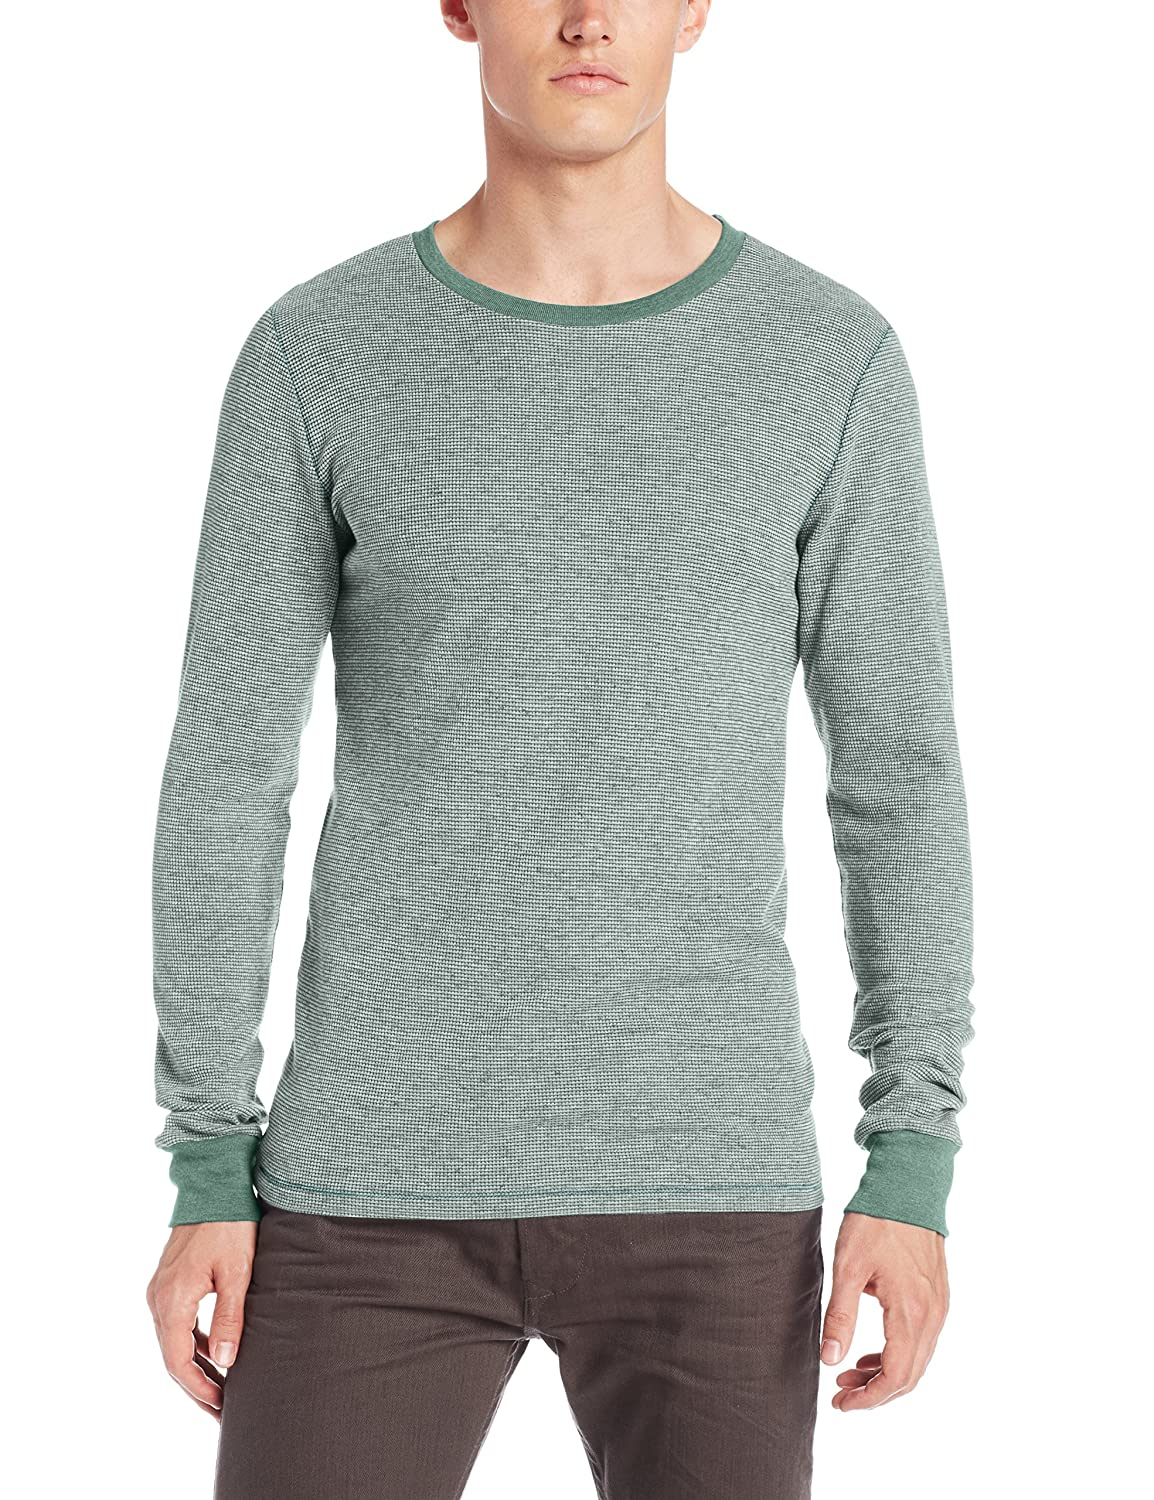 Threads 4 Thought Mens Flex Thermal Ls Crew Evergreen XX-Large Threads 4 Thought Men/'s Apparel TM02900